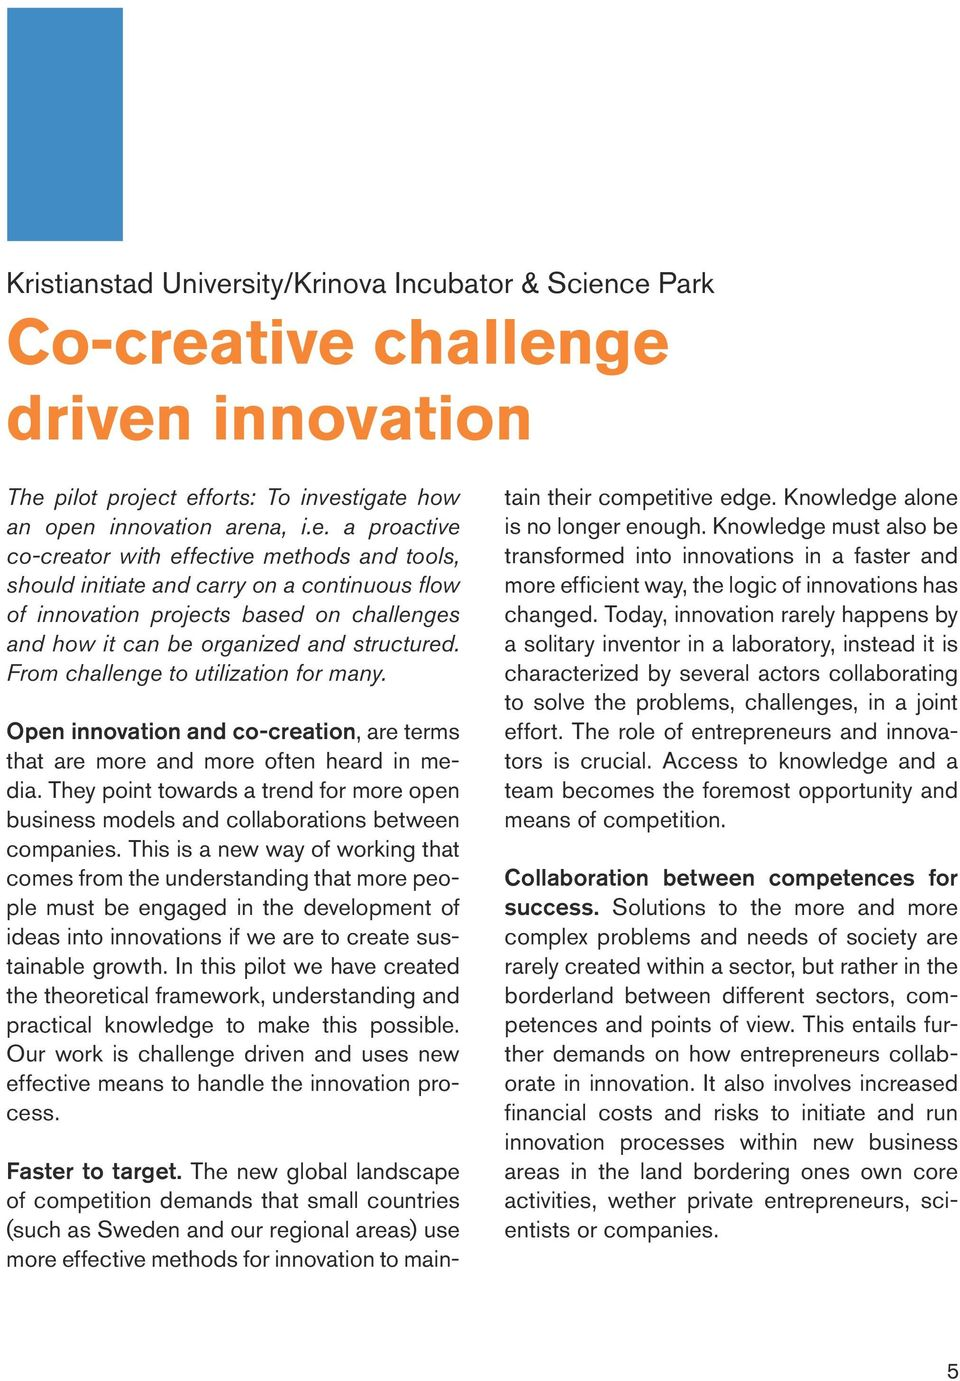 ce Park Co-creative challenge driven innovation The pilot project efforts: To investigate how an open innovation arena, i.e. a proactive co-creator with effective methods and tools, should initiate and carry on a continuous flow of innovation projects based on challenges and how it can be organized and structured.